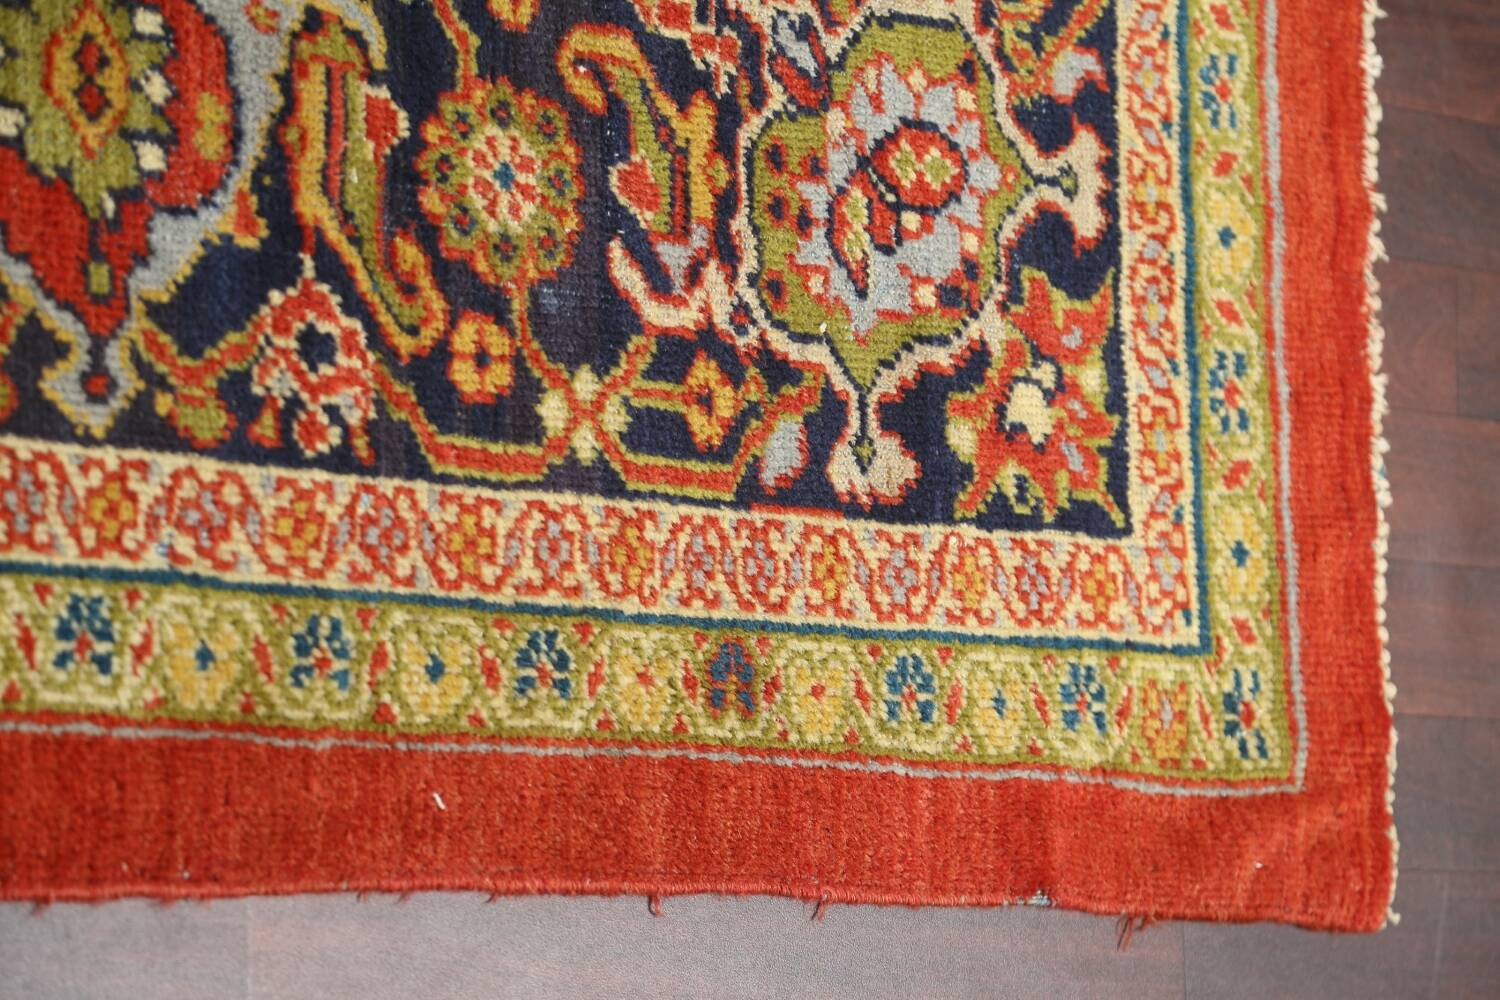 Pre-1900 Antique Vegetable Dye Sultanabad Persian Rug 15x22 image 12